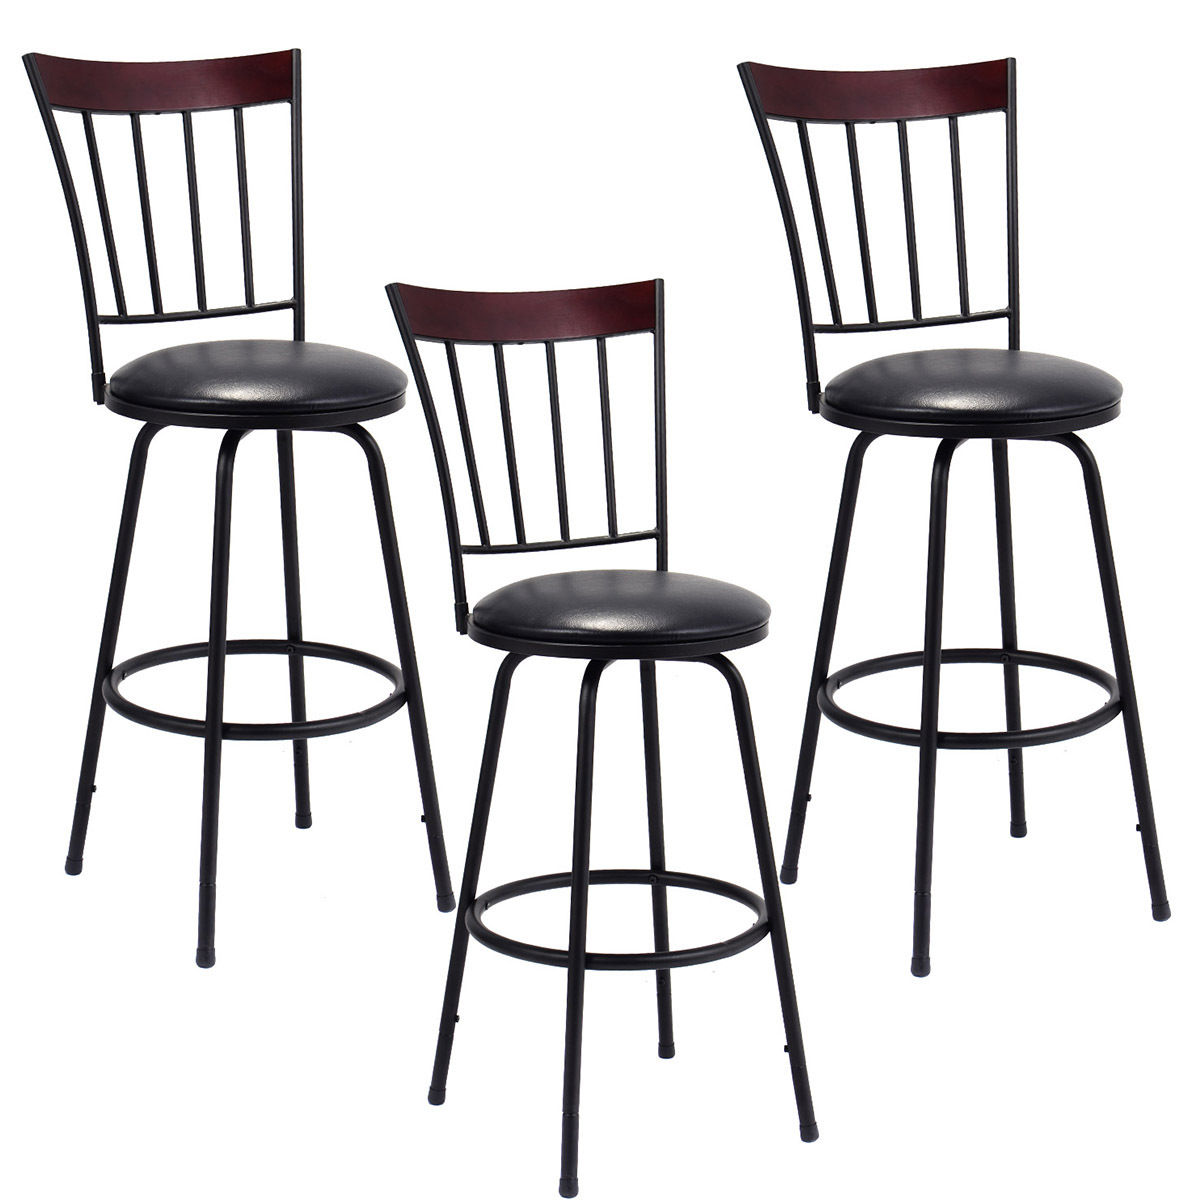 Costway Set of 3 Swivel Bar Stools PU Leather Steel Frame Bar Stool Bistro Pub Chair by Costway